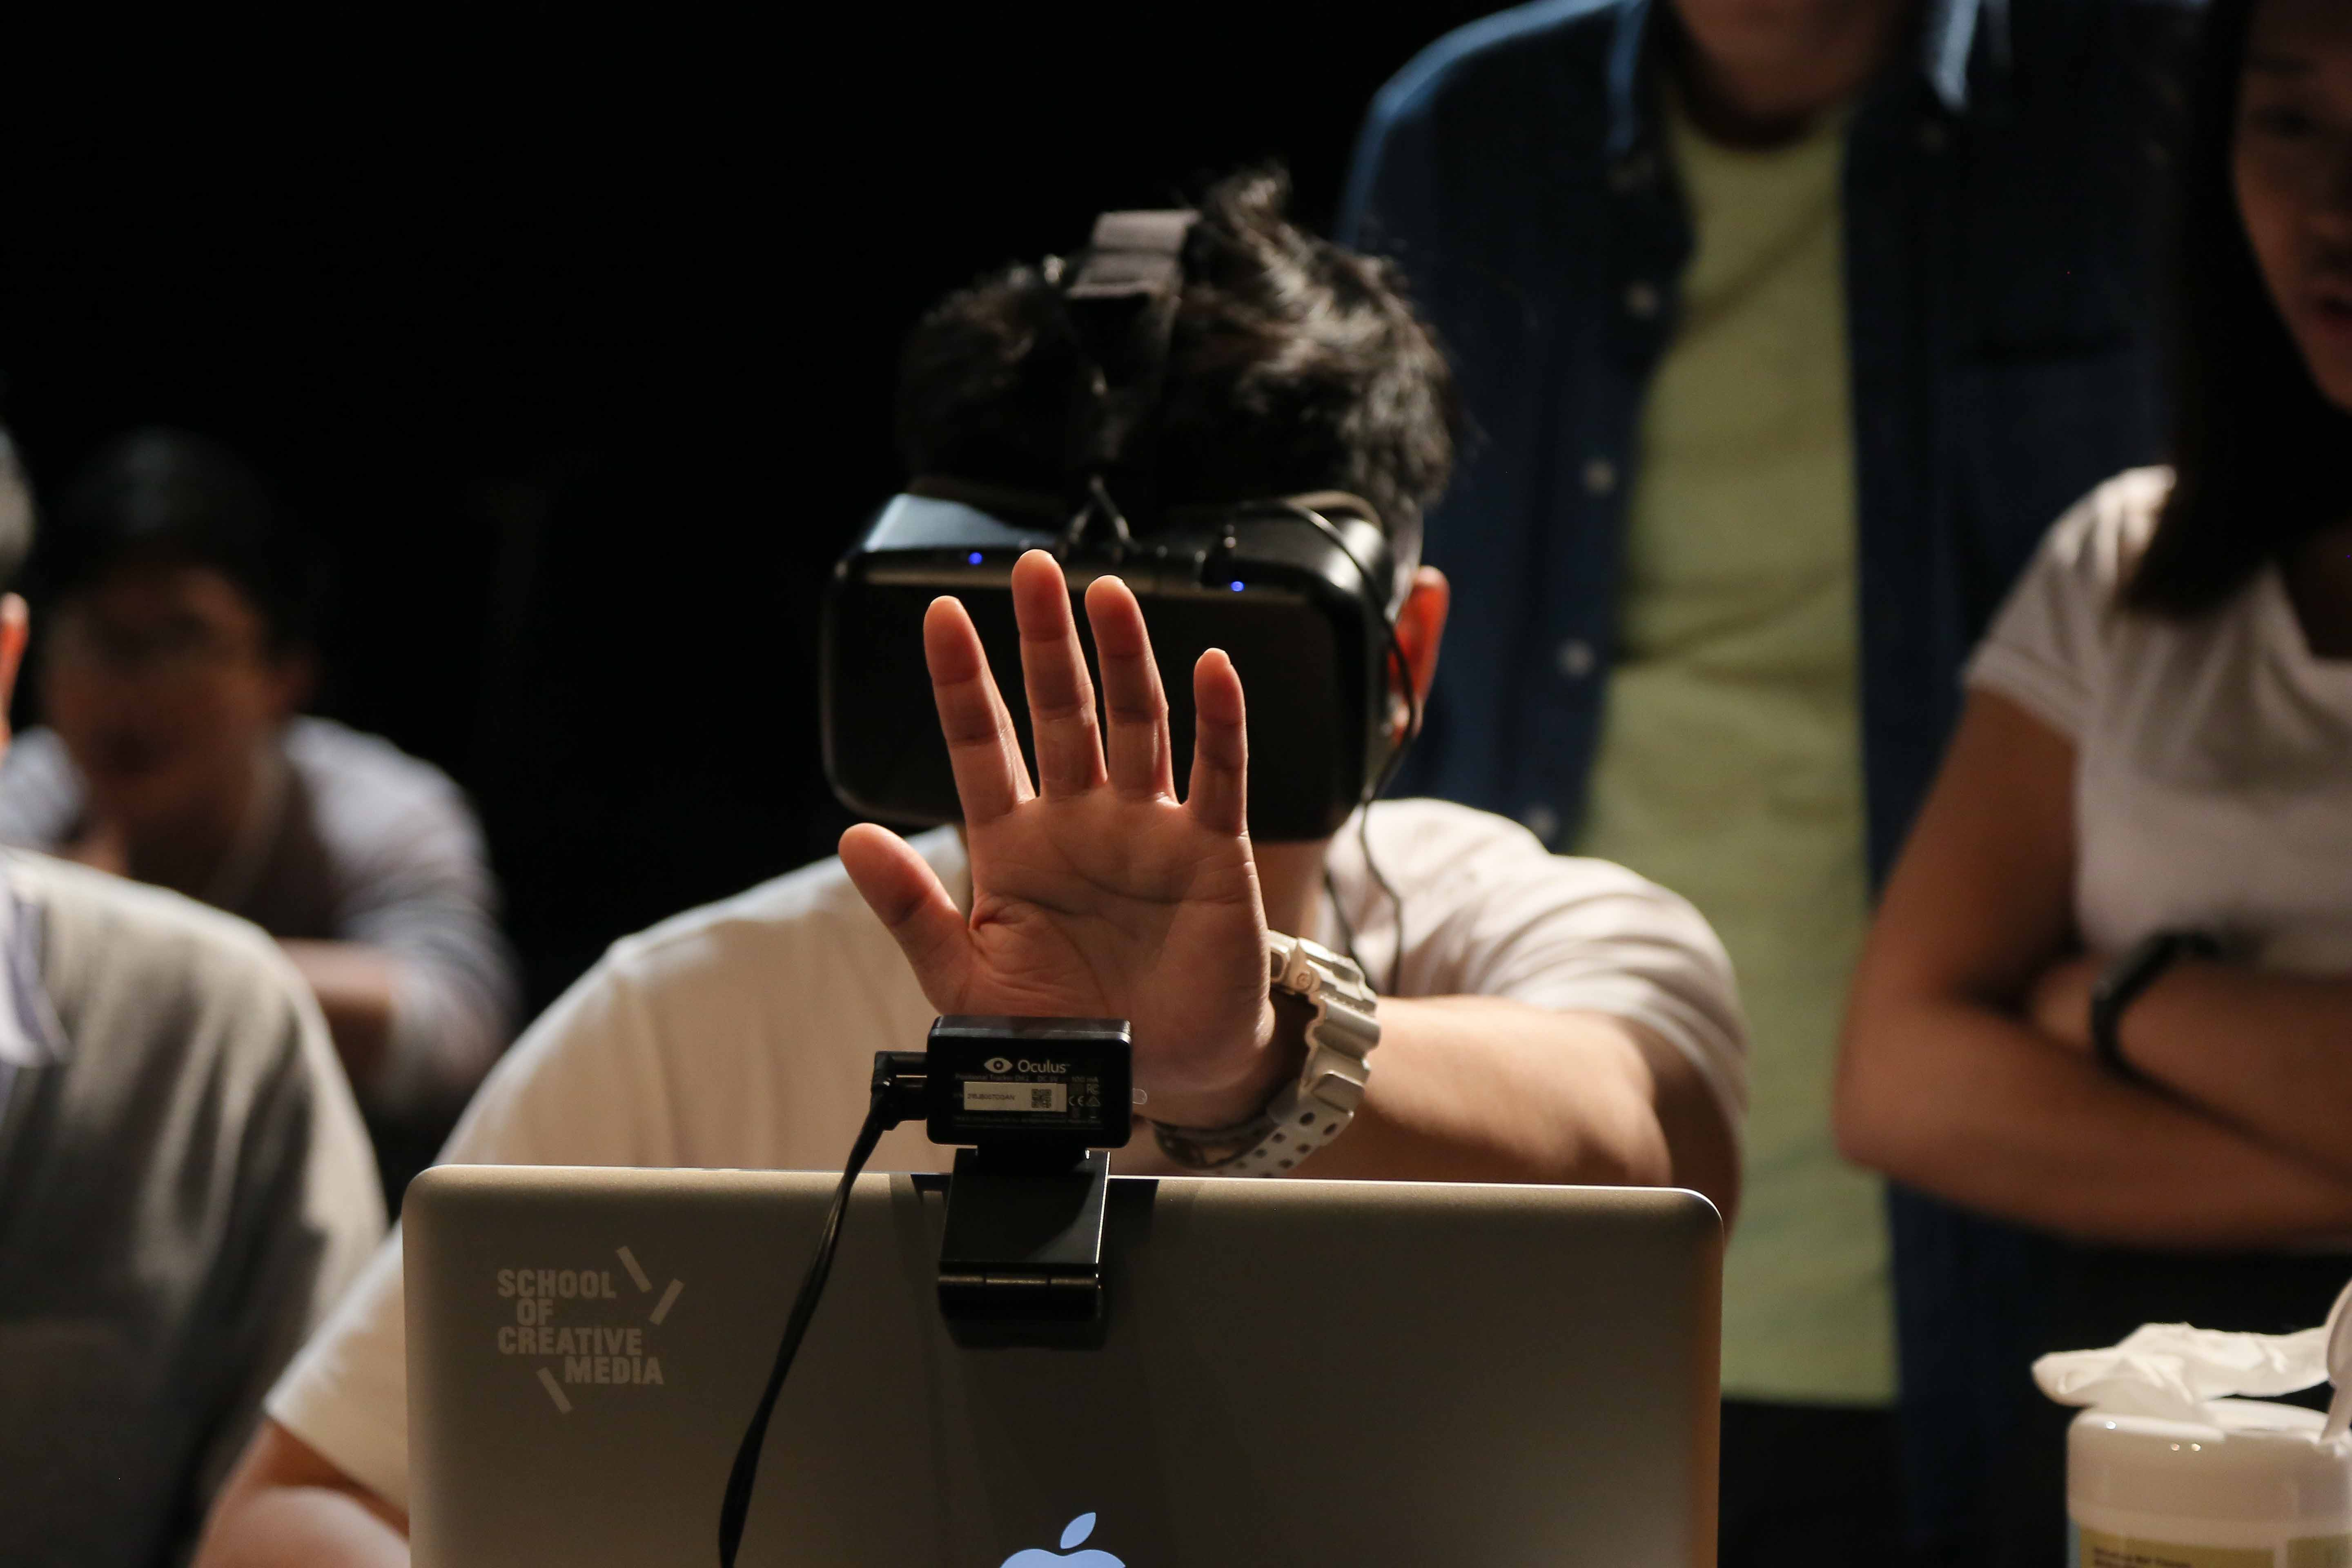 With Leapmotion controller, a sensor following movements of fingers, the player had to make physical response to the game.